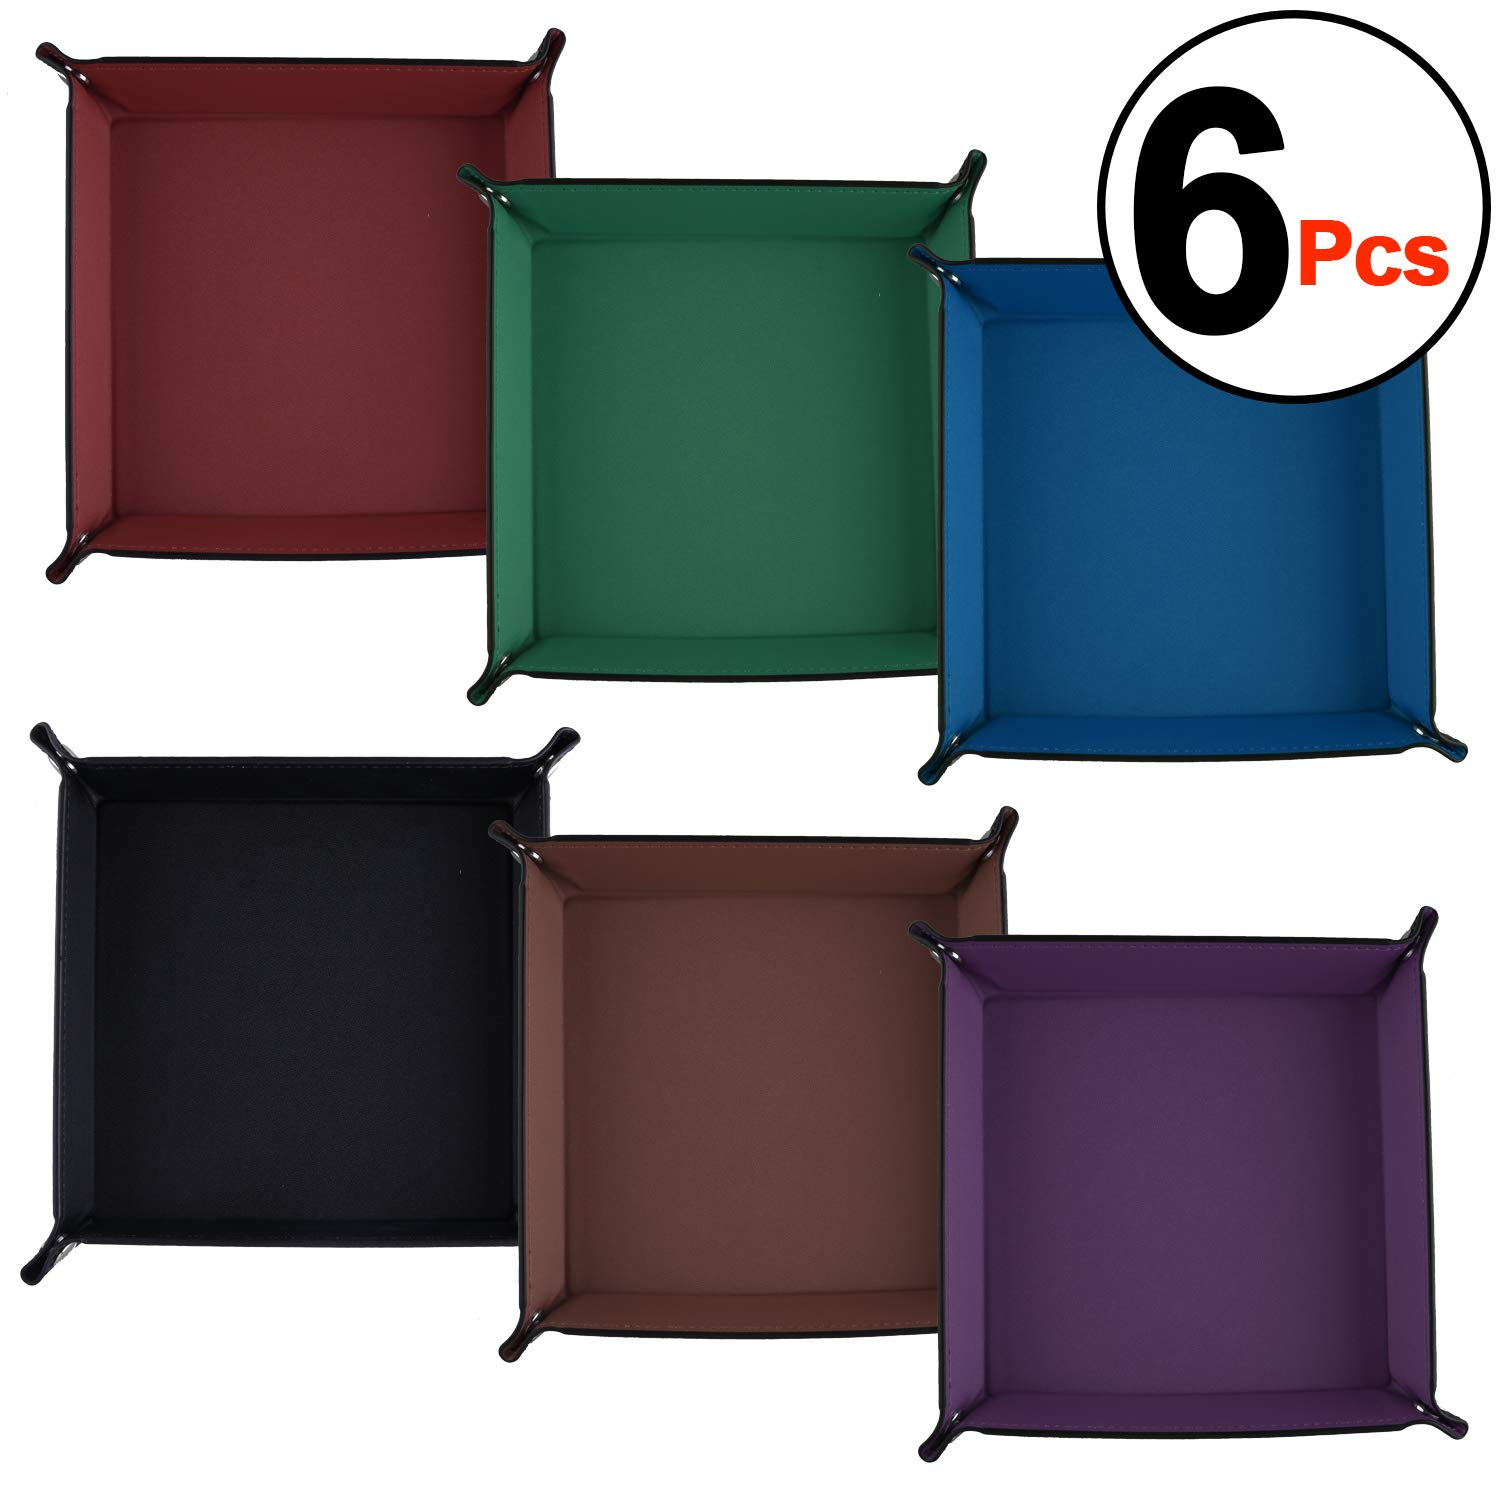 SIQUK 6 Pieces Dice Tray PU Leather Folding Square Holder for Dice Games, 6 Dark Colors by SIQUK